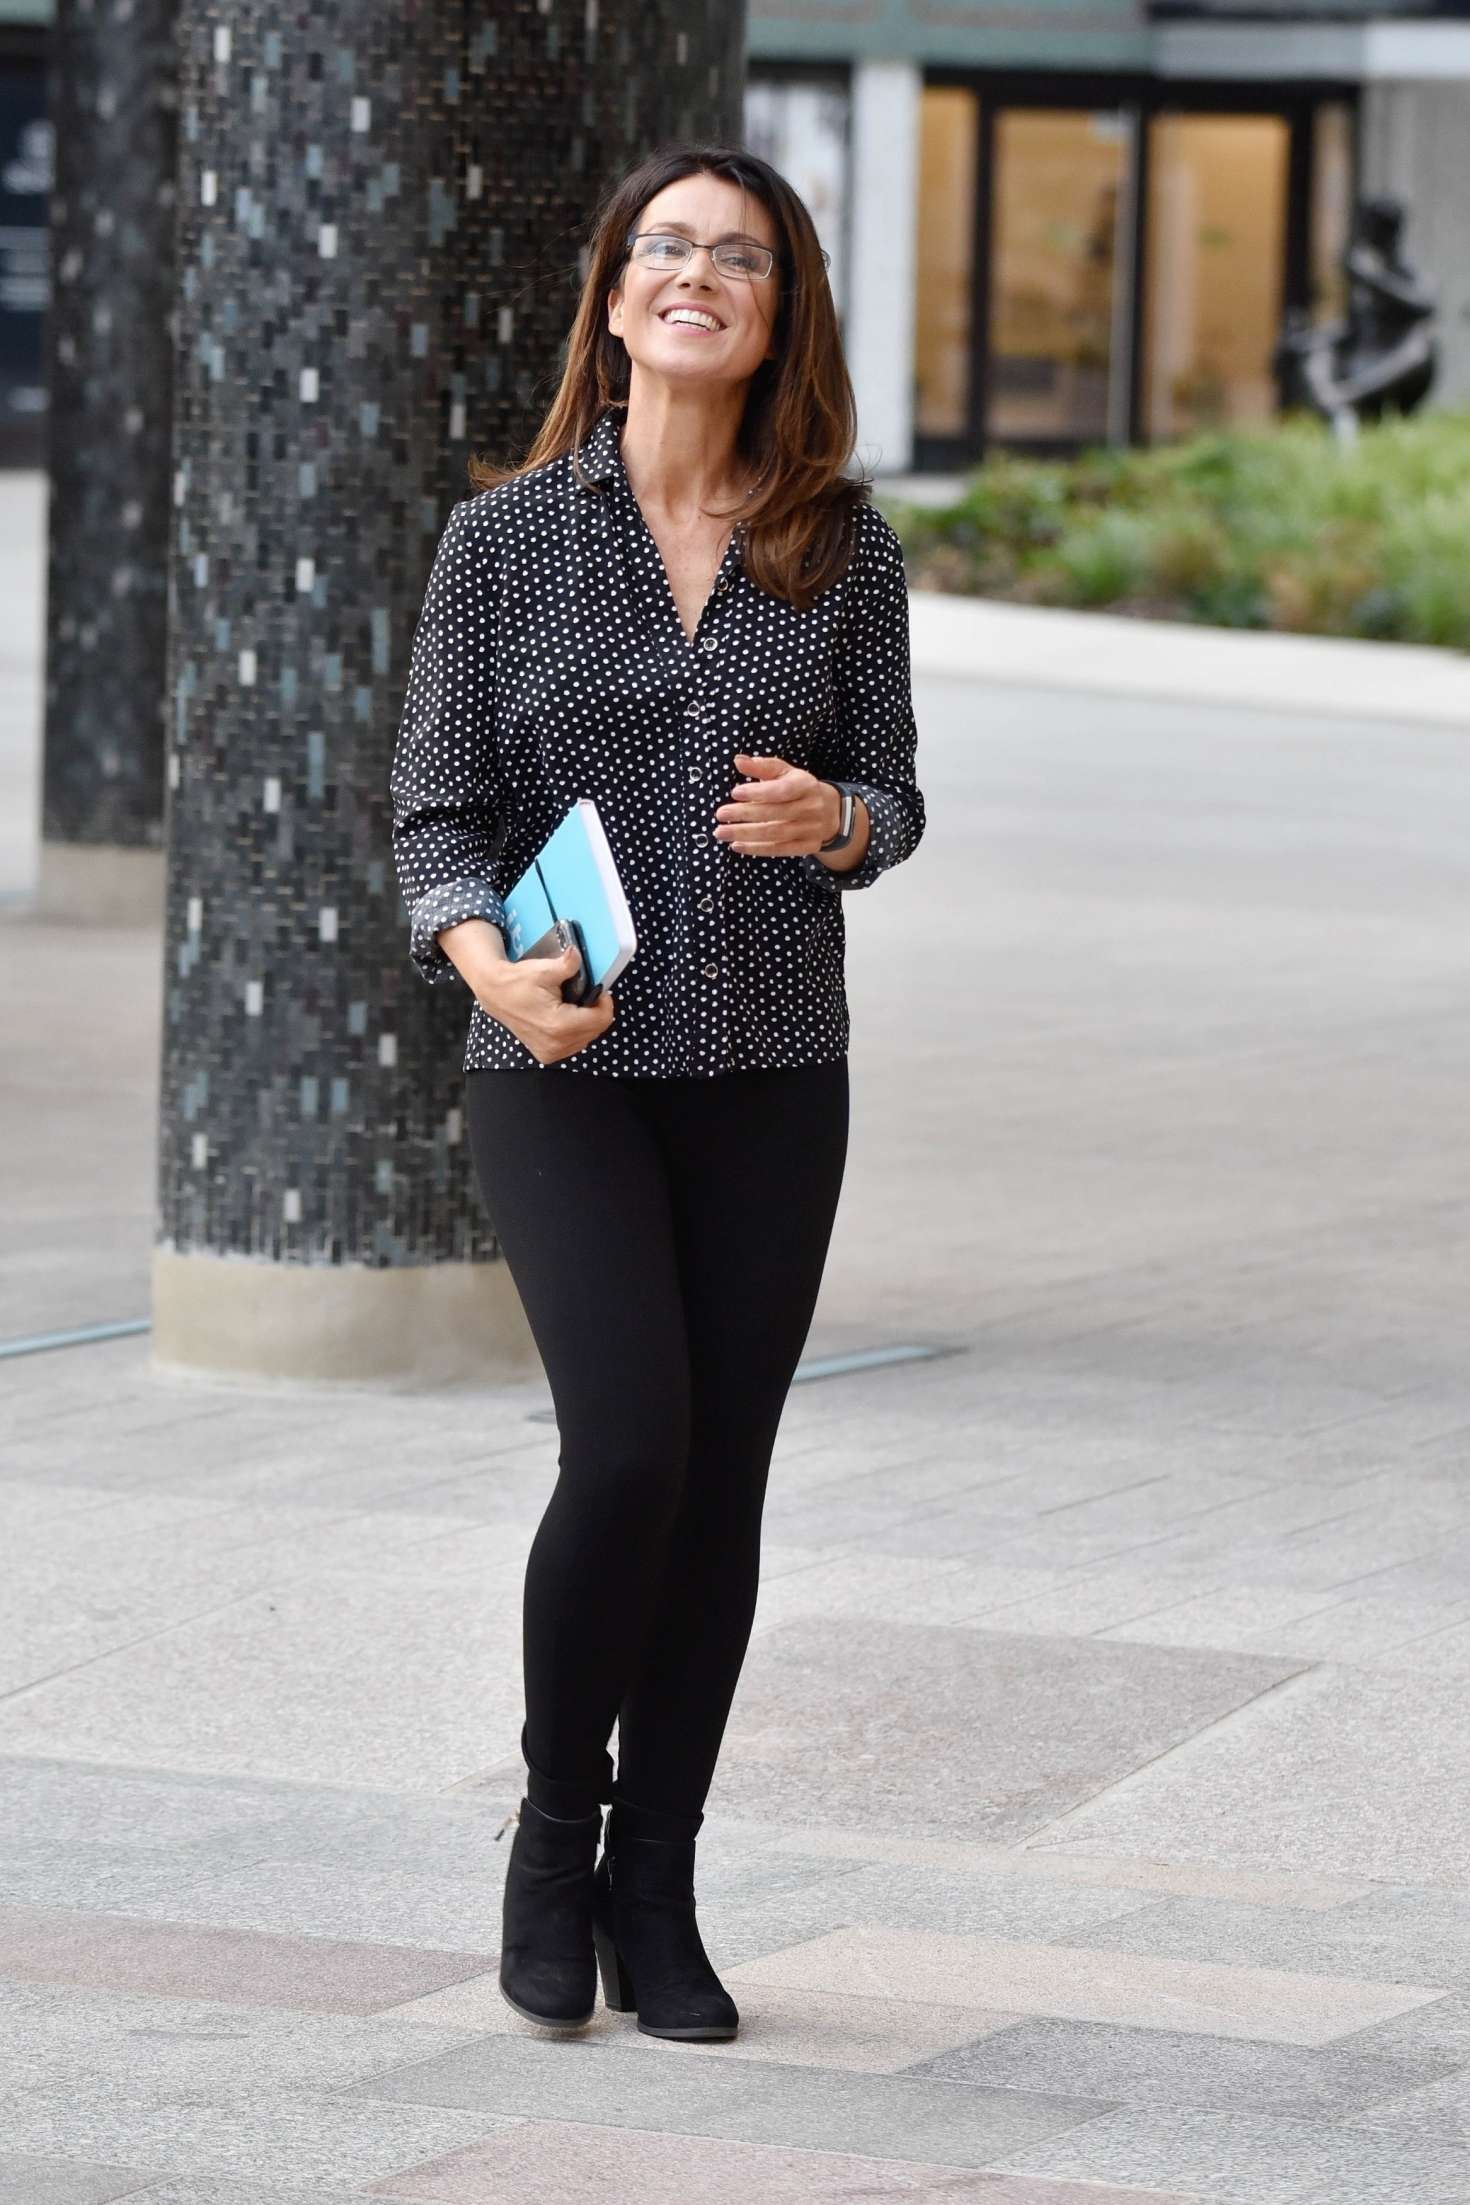 Susanna reid in her pyjamas out in london new pics